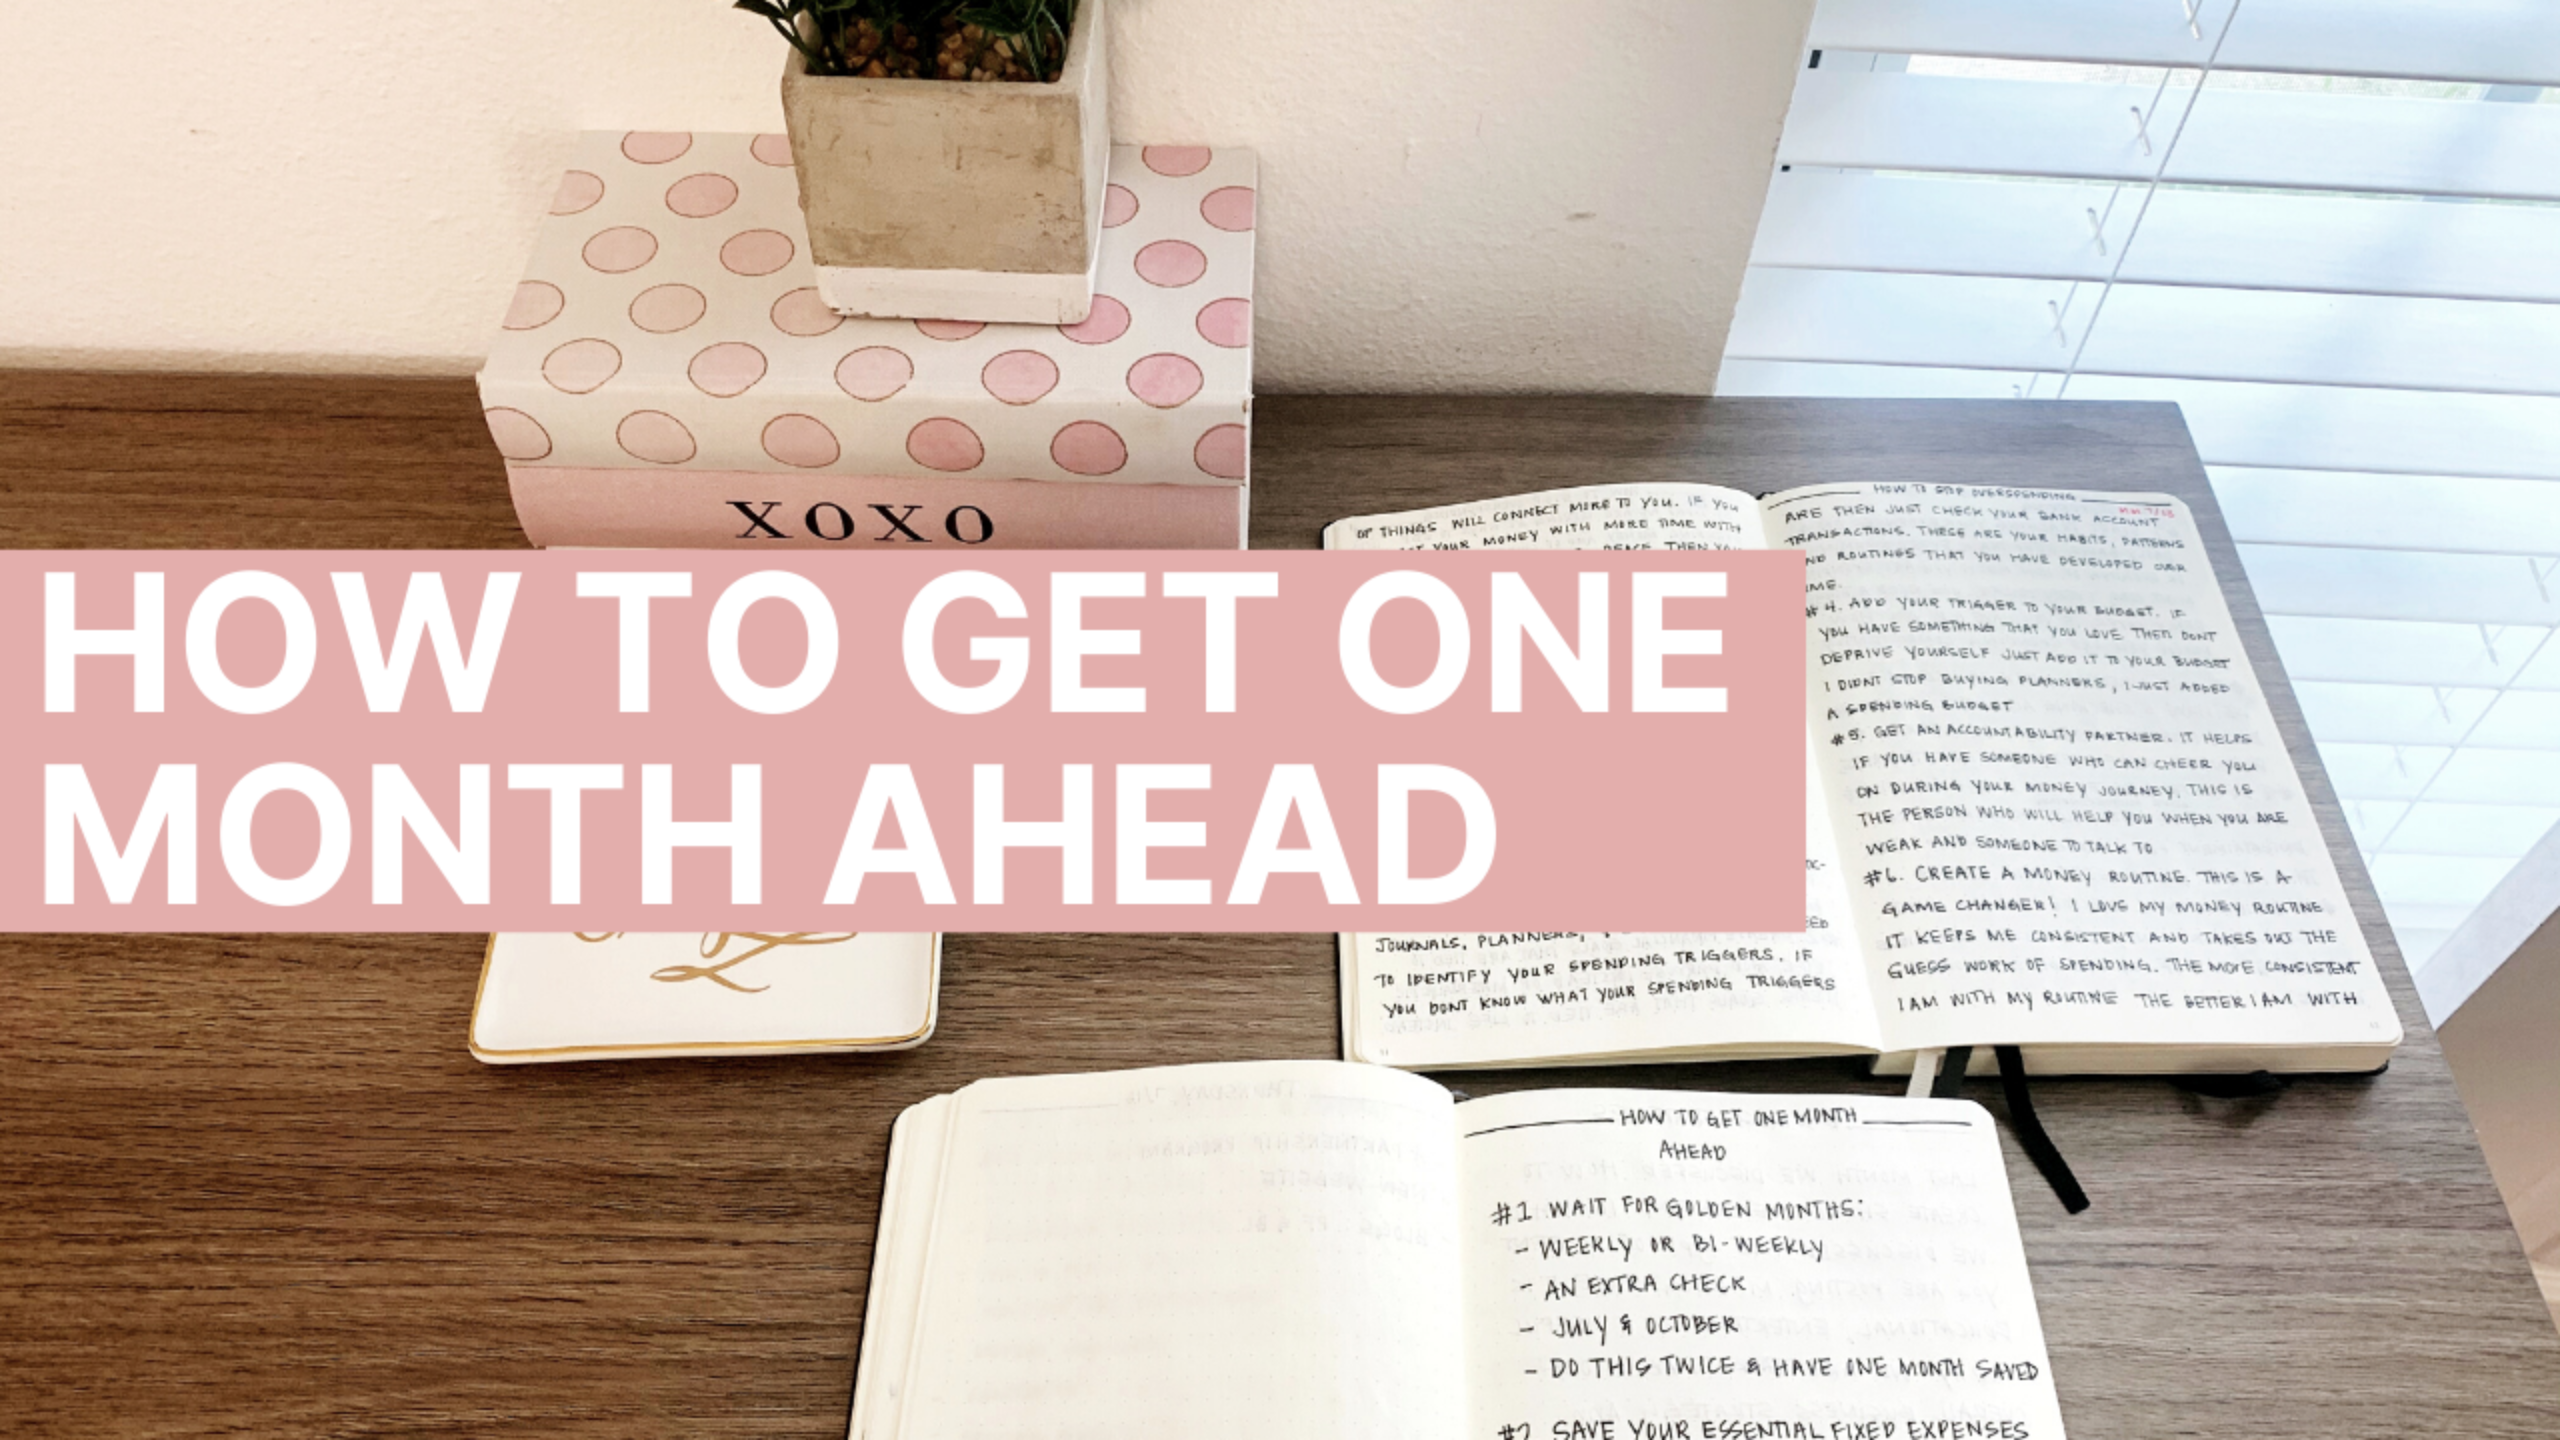 How To Get One Month Ahead